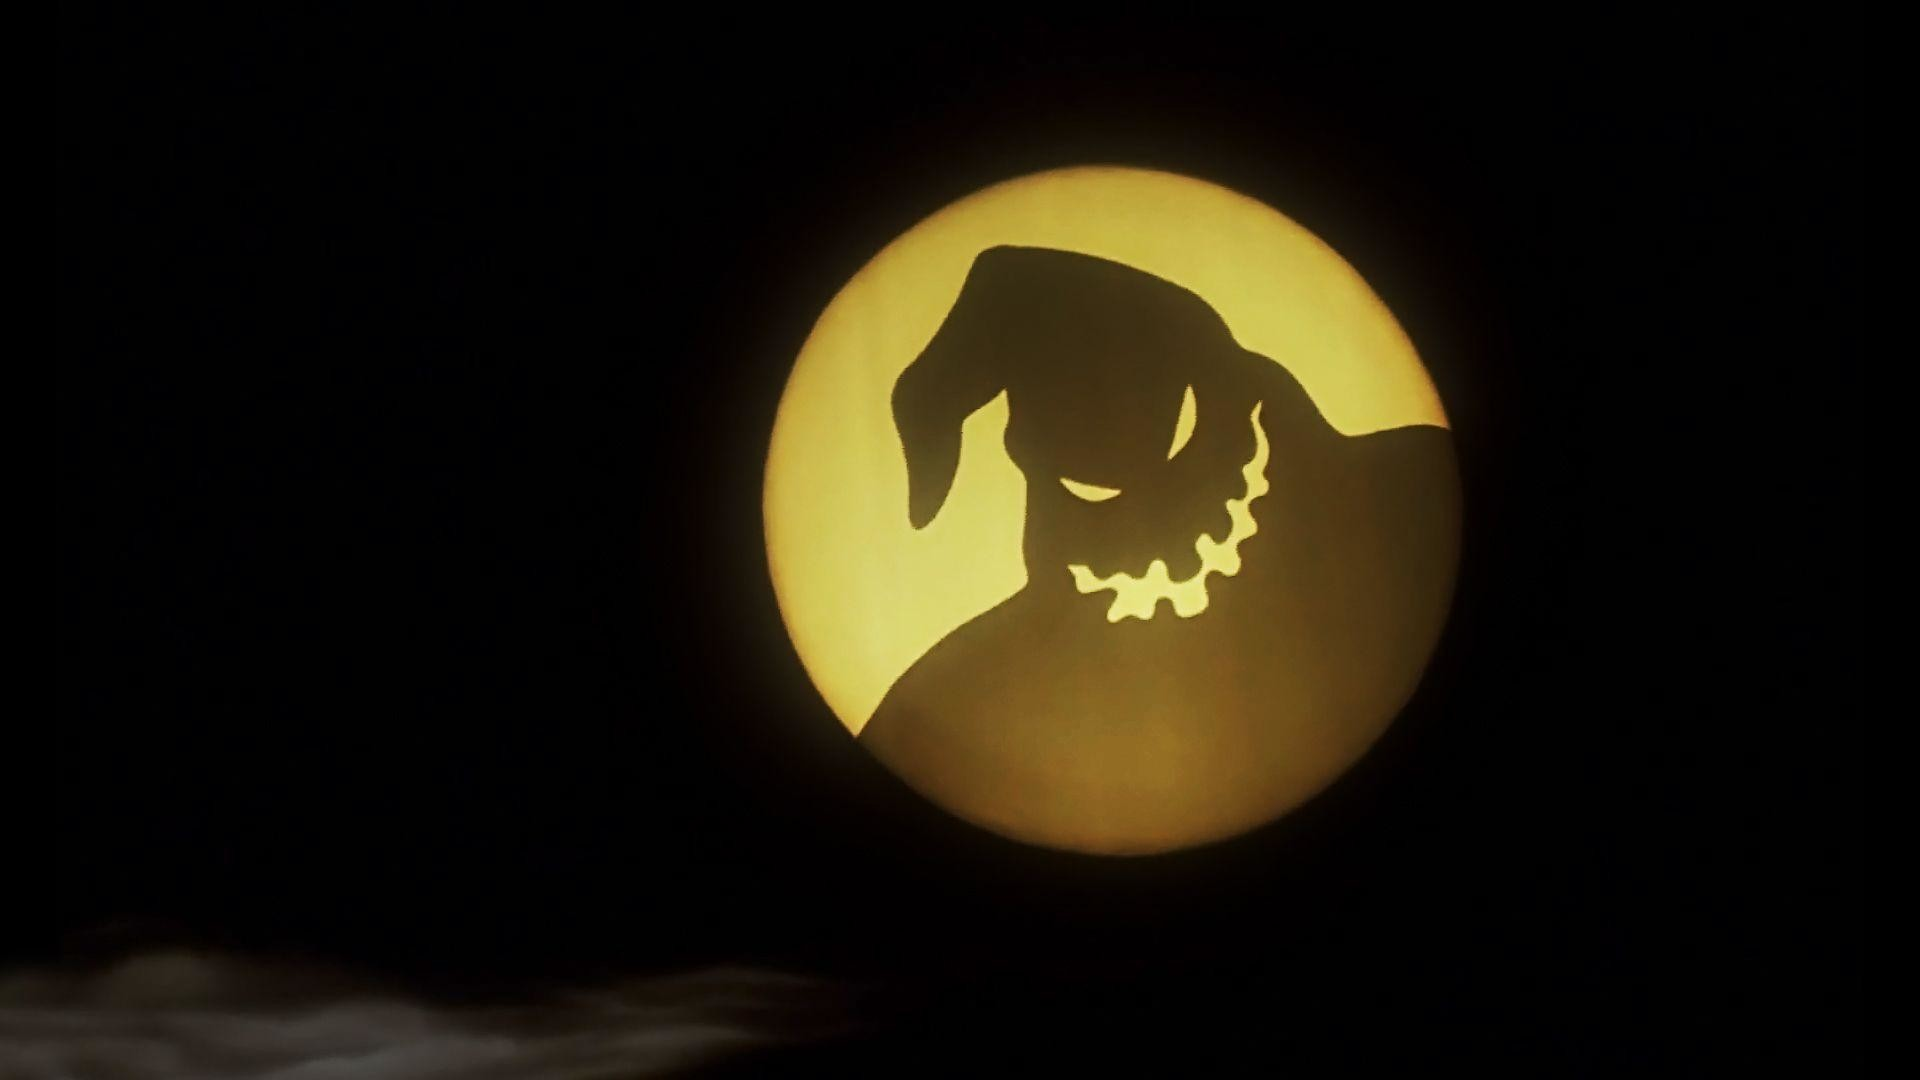 1920x1080 The Nightmare Before Christmas Wallpapers - PlayStation® Forums